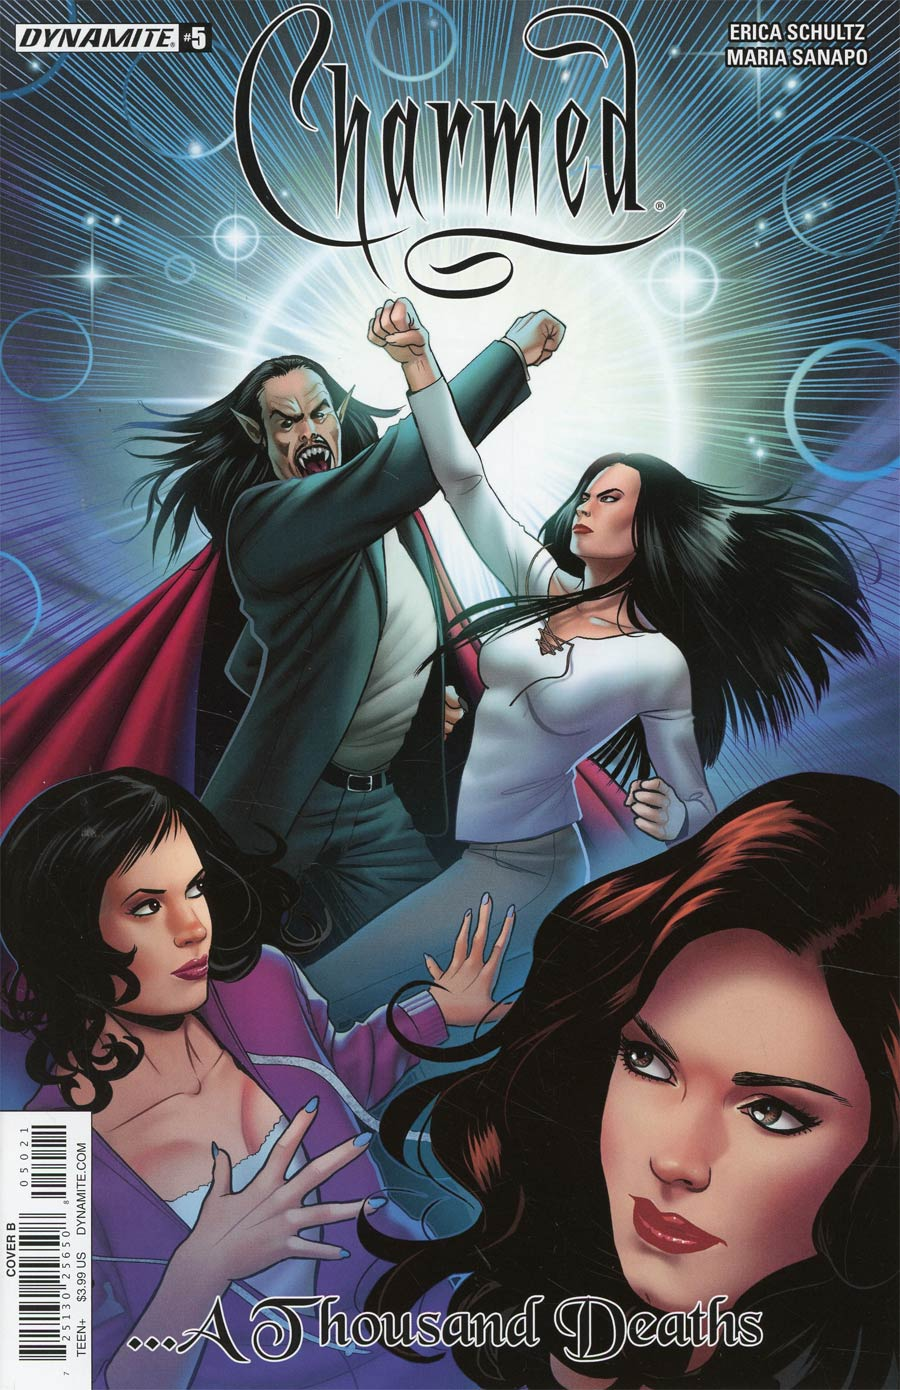 Charmed Vol 2 #5 Cover B Variant Maria Sanapo Cover